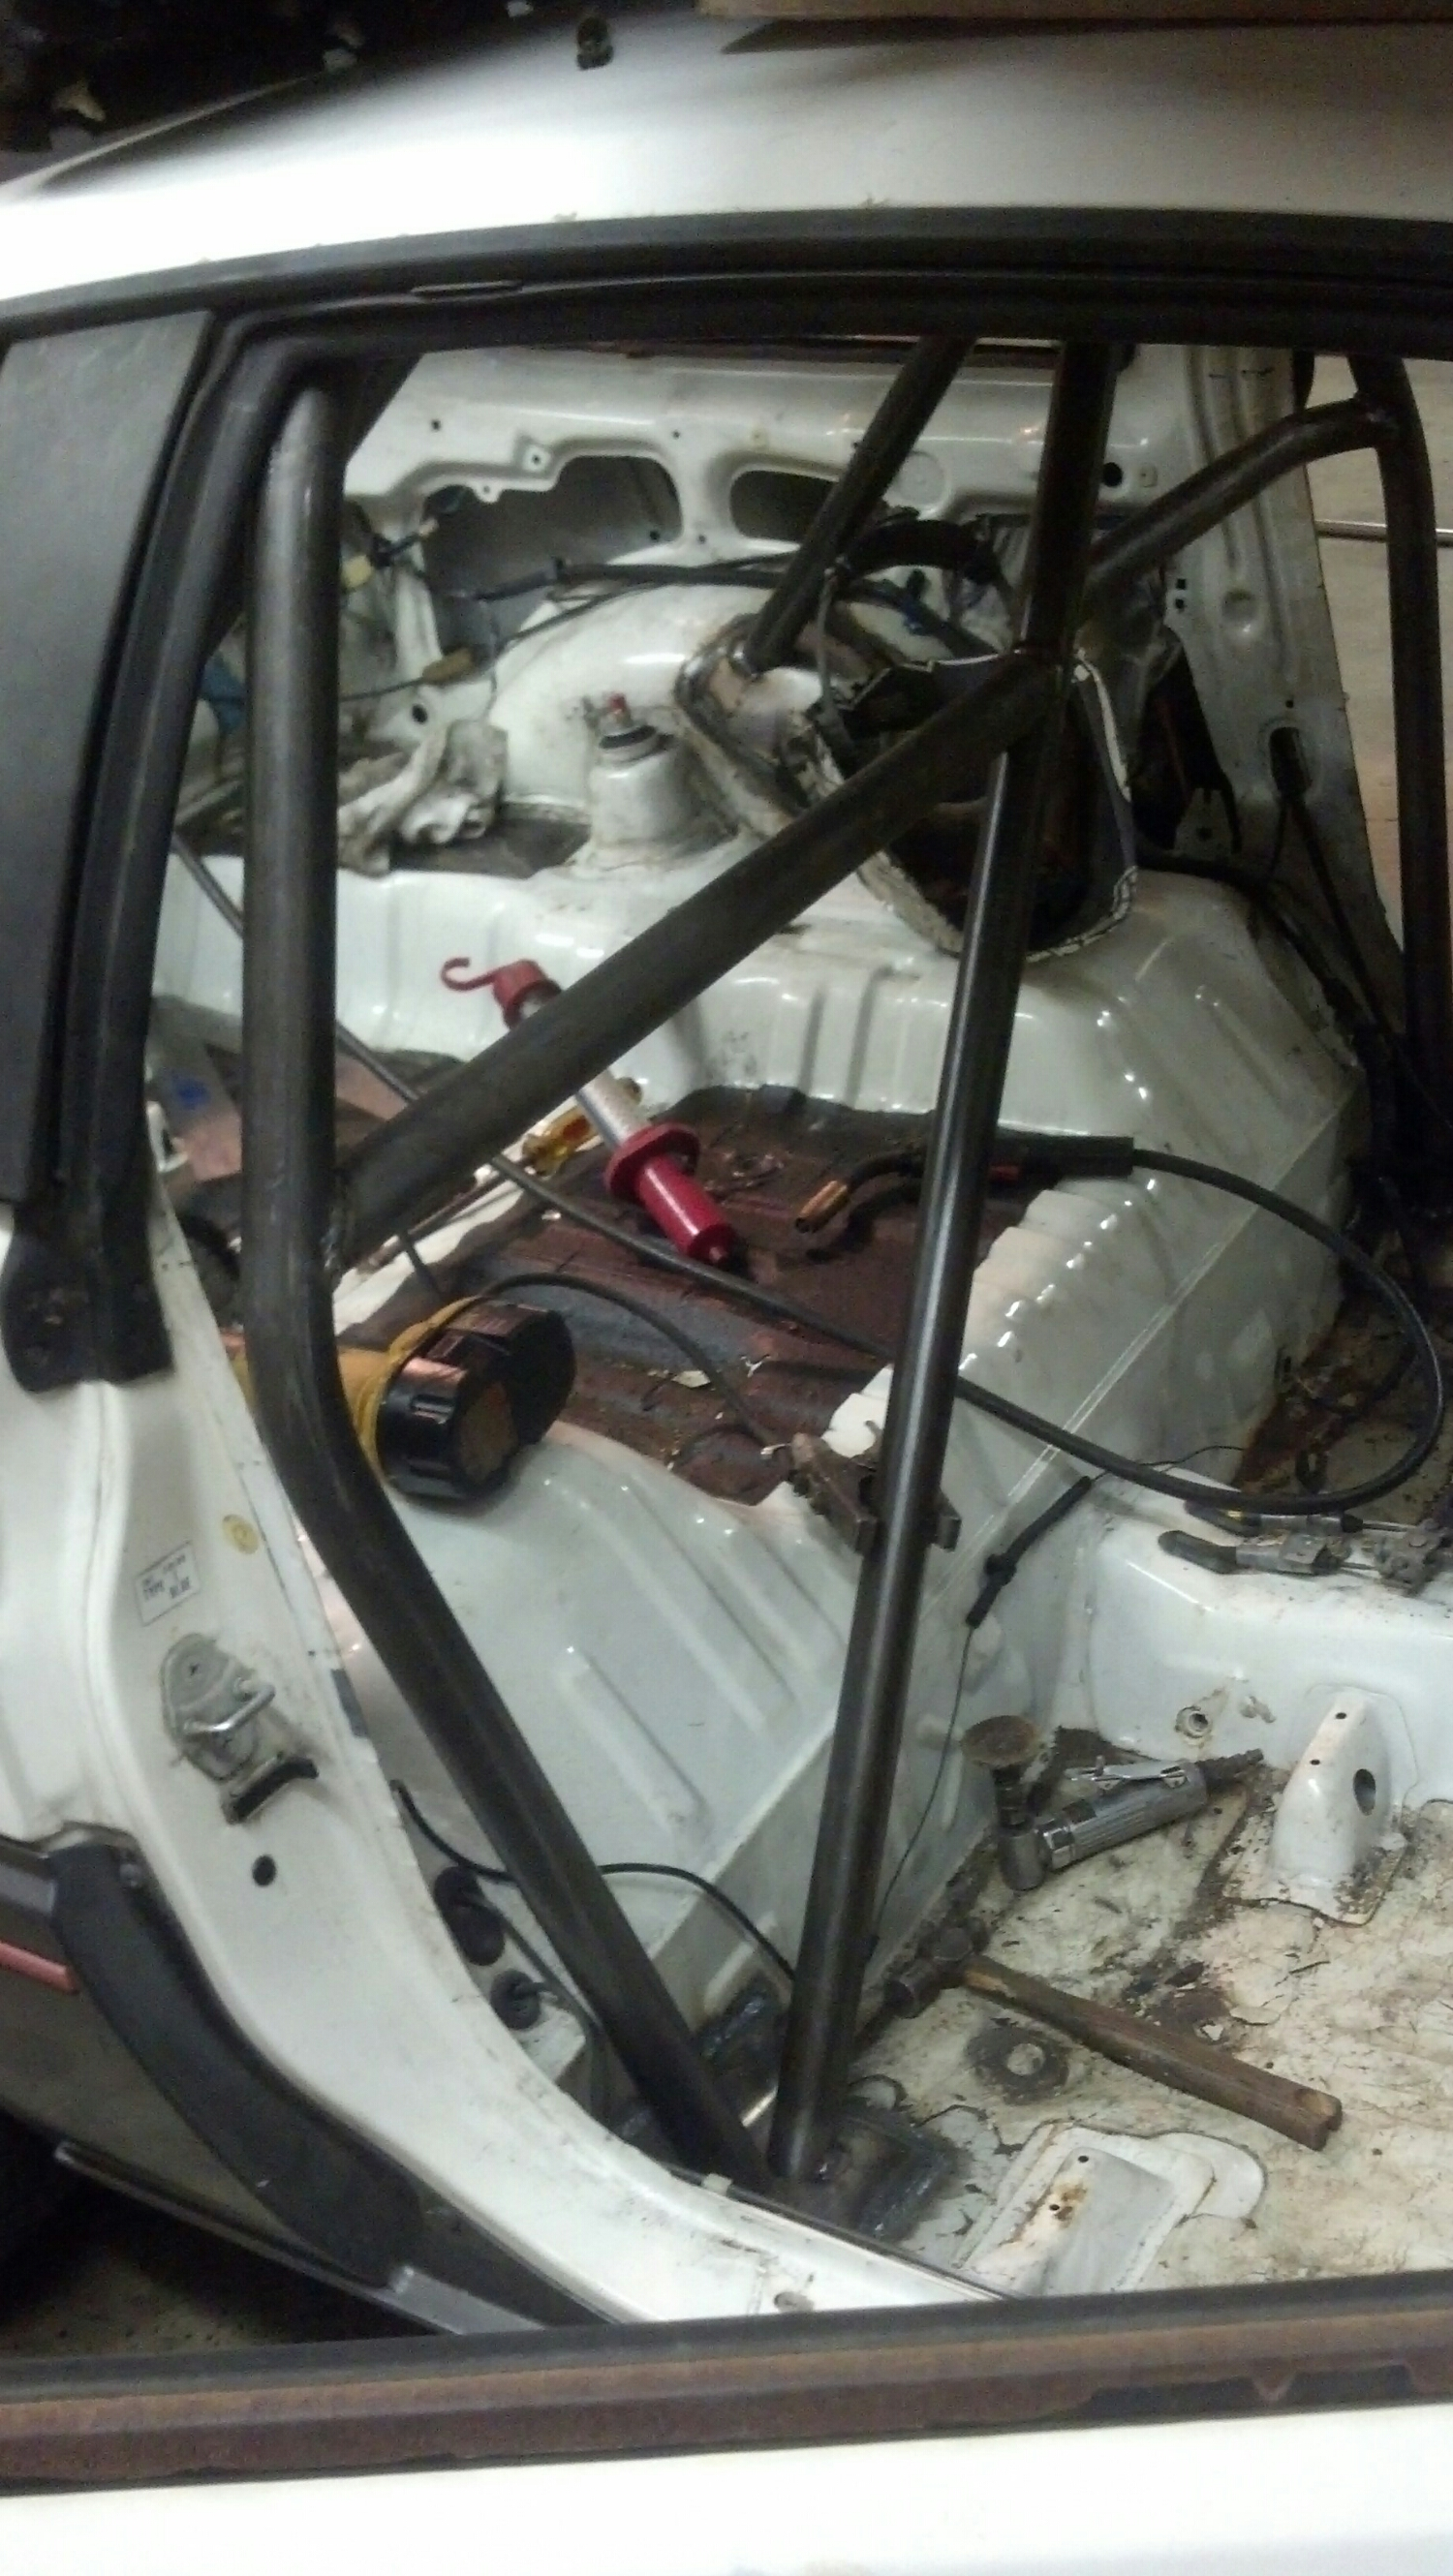 """Its hard to find pics for an article on rules, so here is an in process cage fabrication pic of """"the honey badger"""" (A someday- feature car here)"""